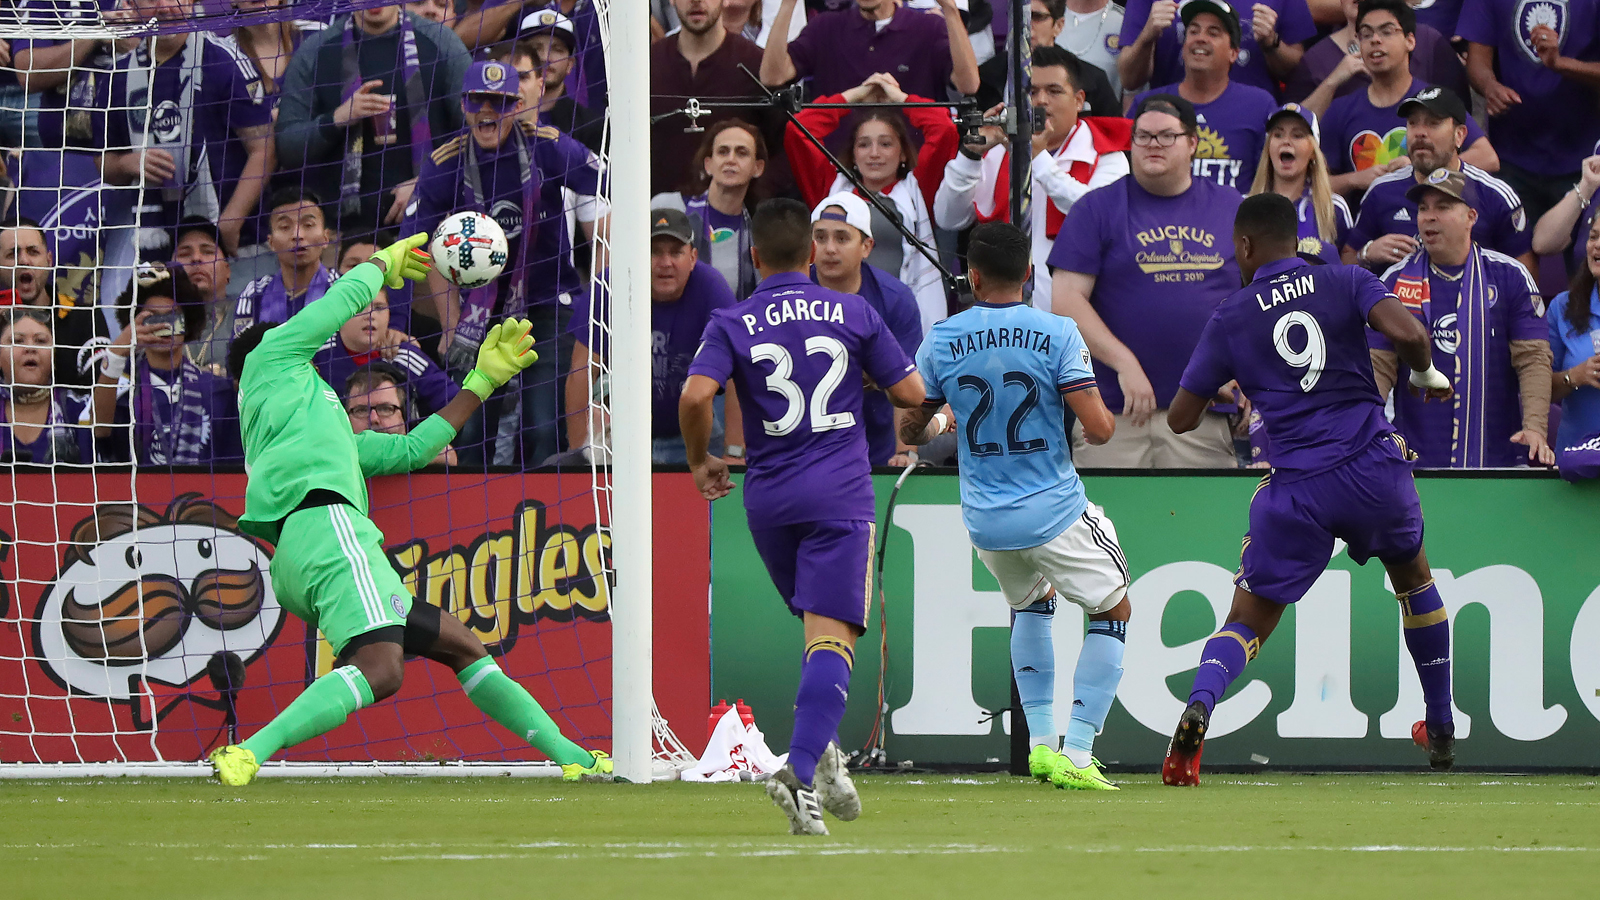 Cyle Larin helps Orlando City open new season, new stadium with win over NYCFC